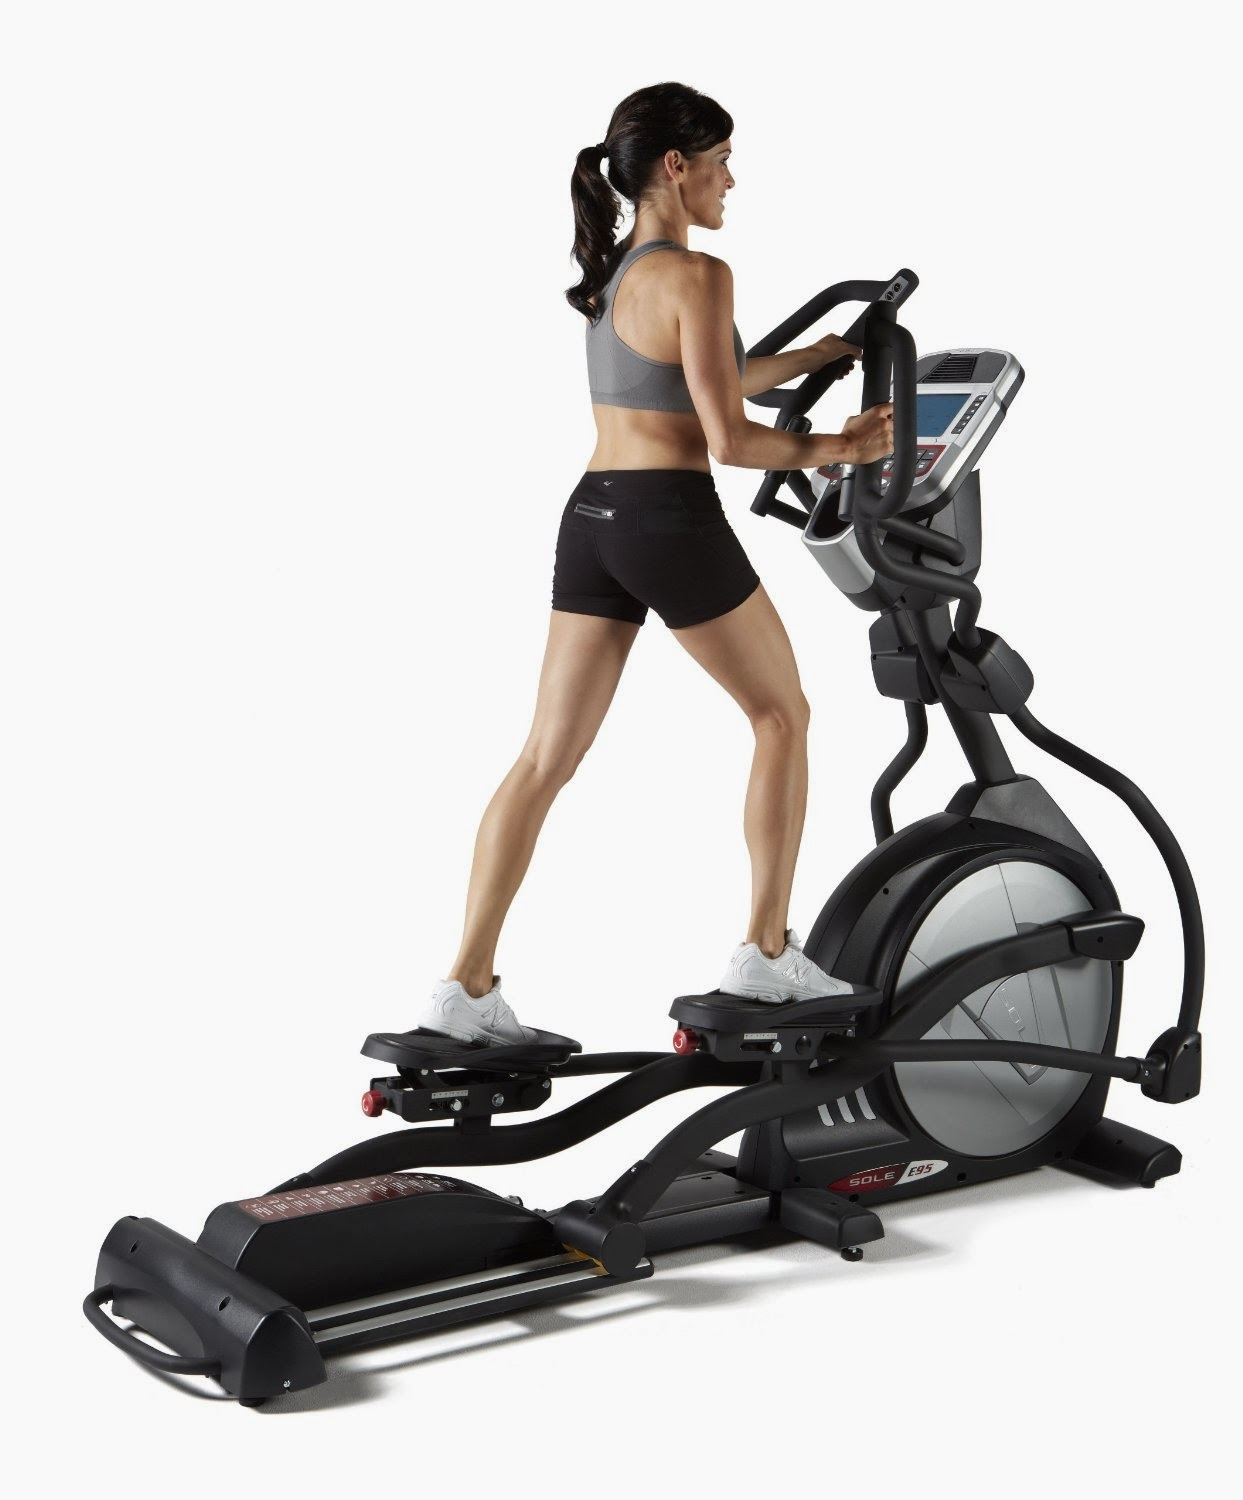 Sole E95 Elliptical Trainer, picture, review features & specifications, compare with Schwinn 470 Elliptical Trainer